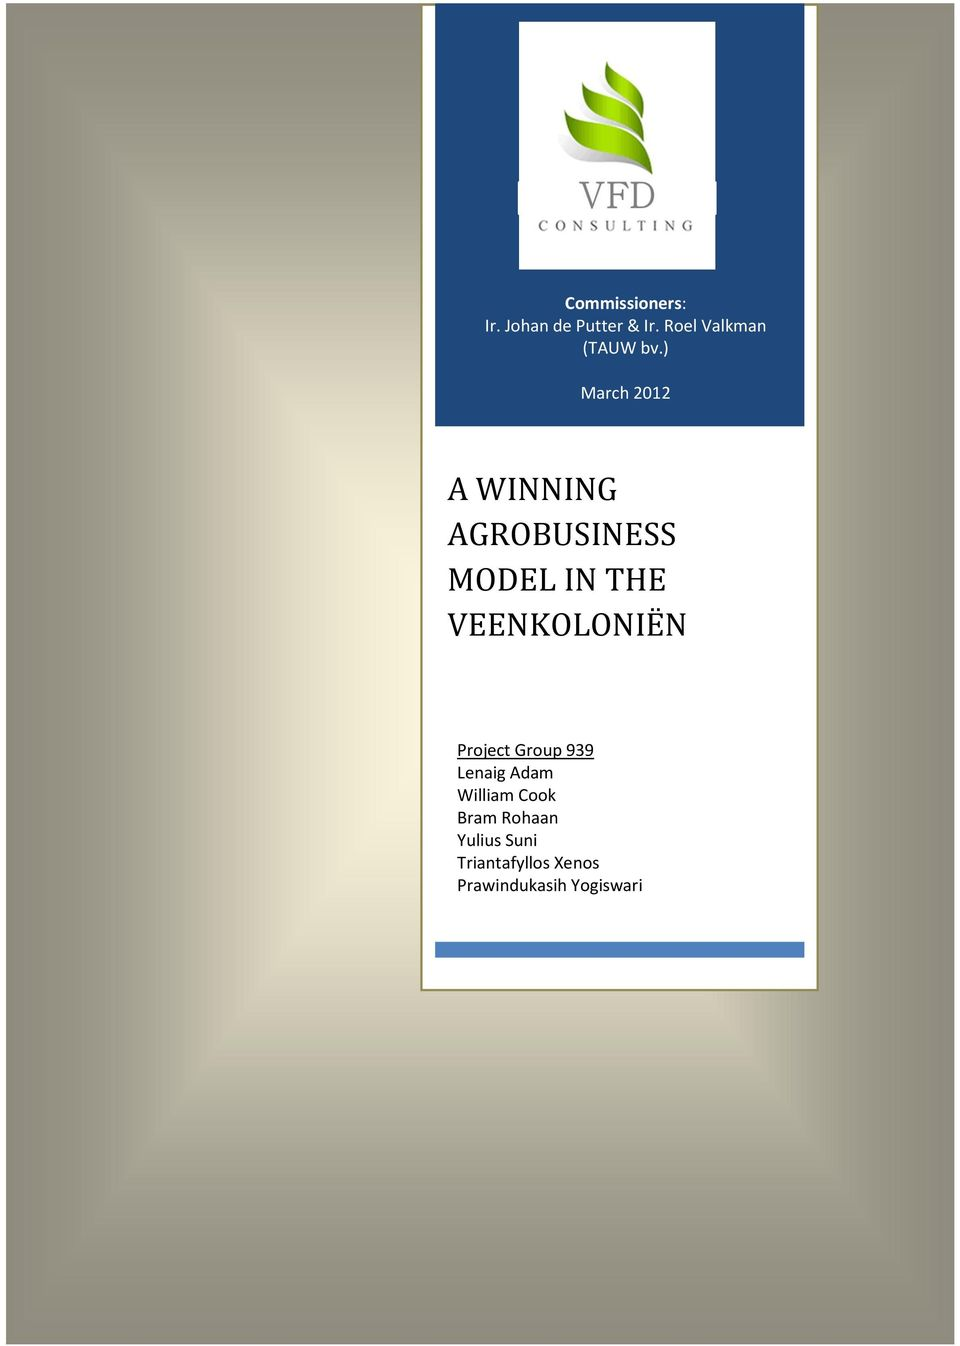 ) March 2012 A WINNING AGROBUSINESS MODEL IN THE